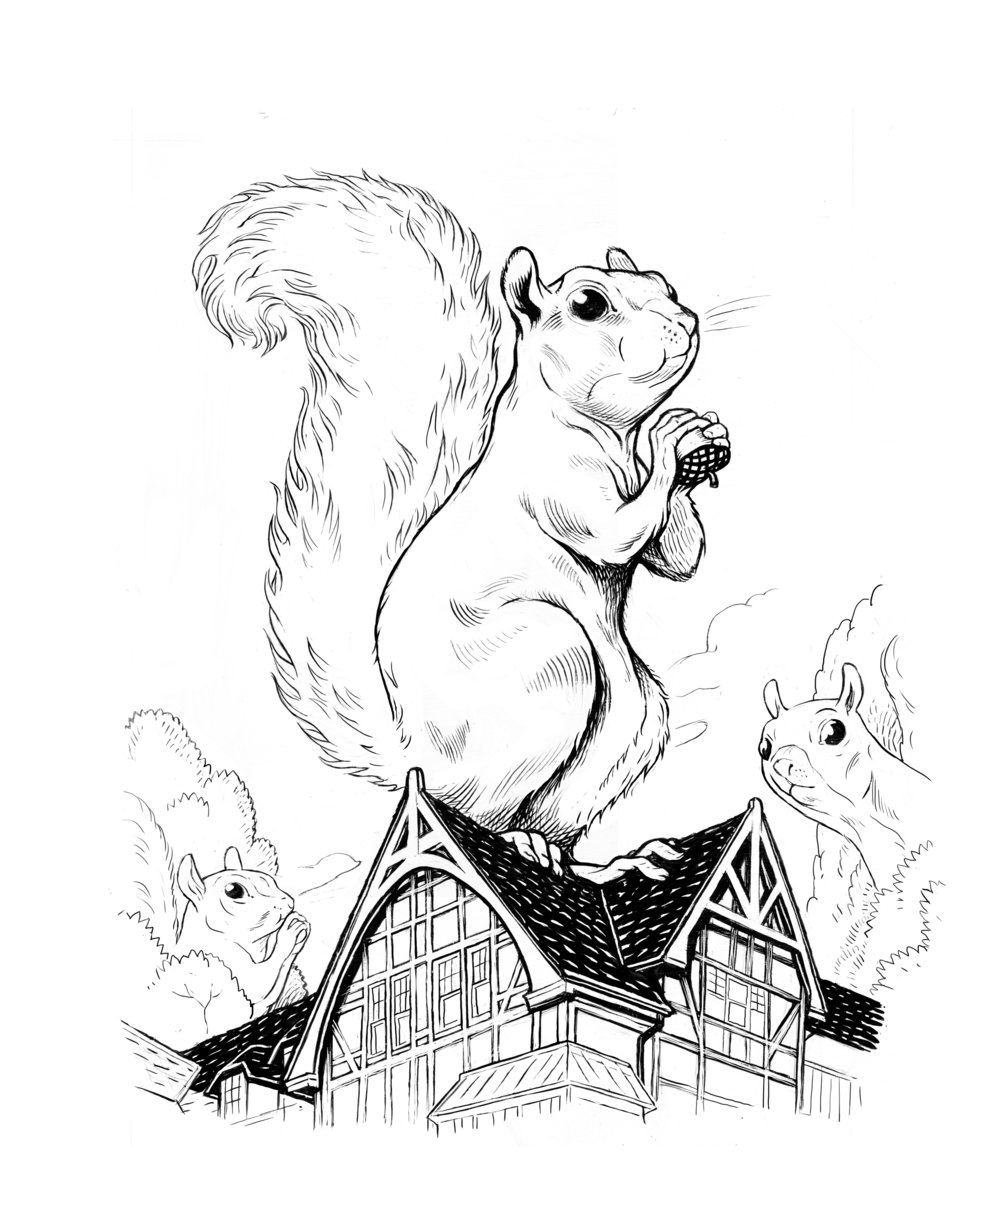 White Squirrels